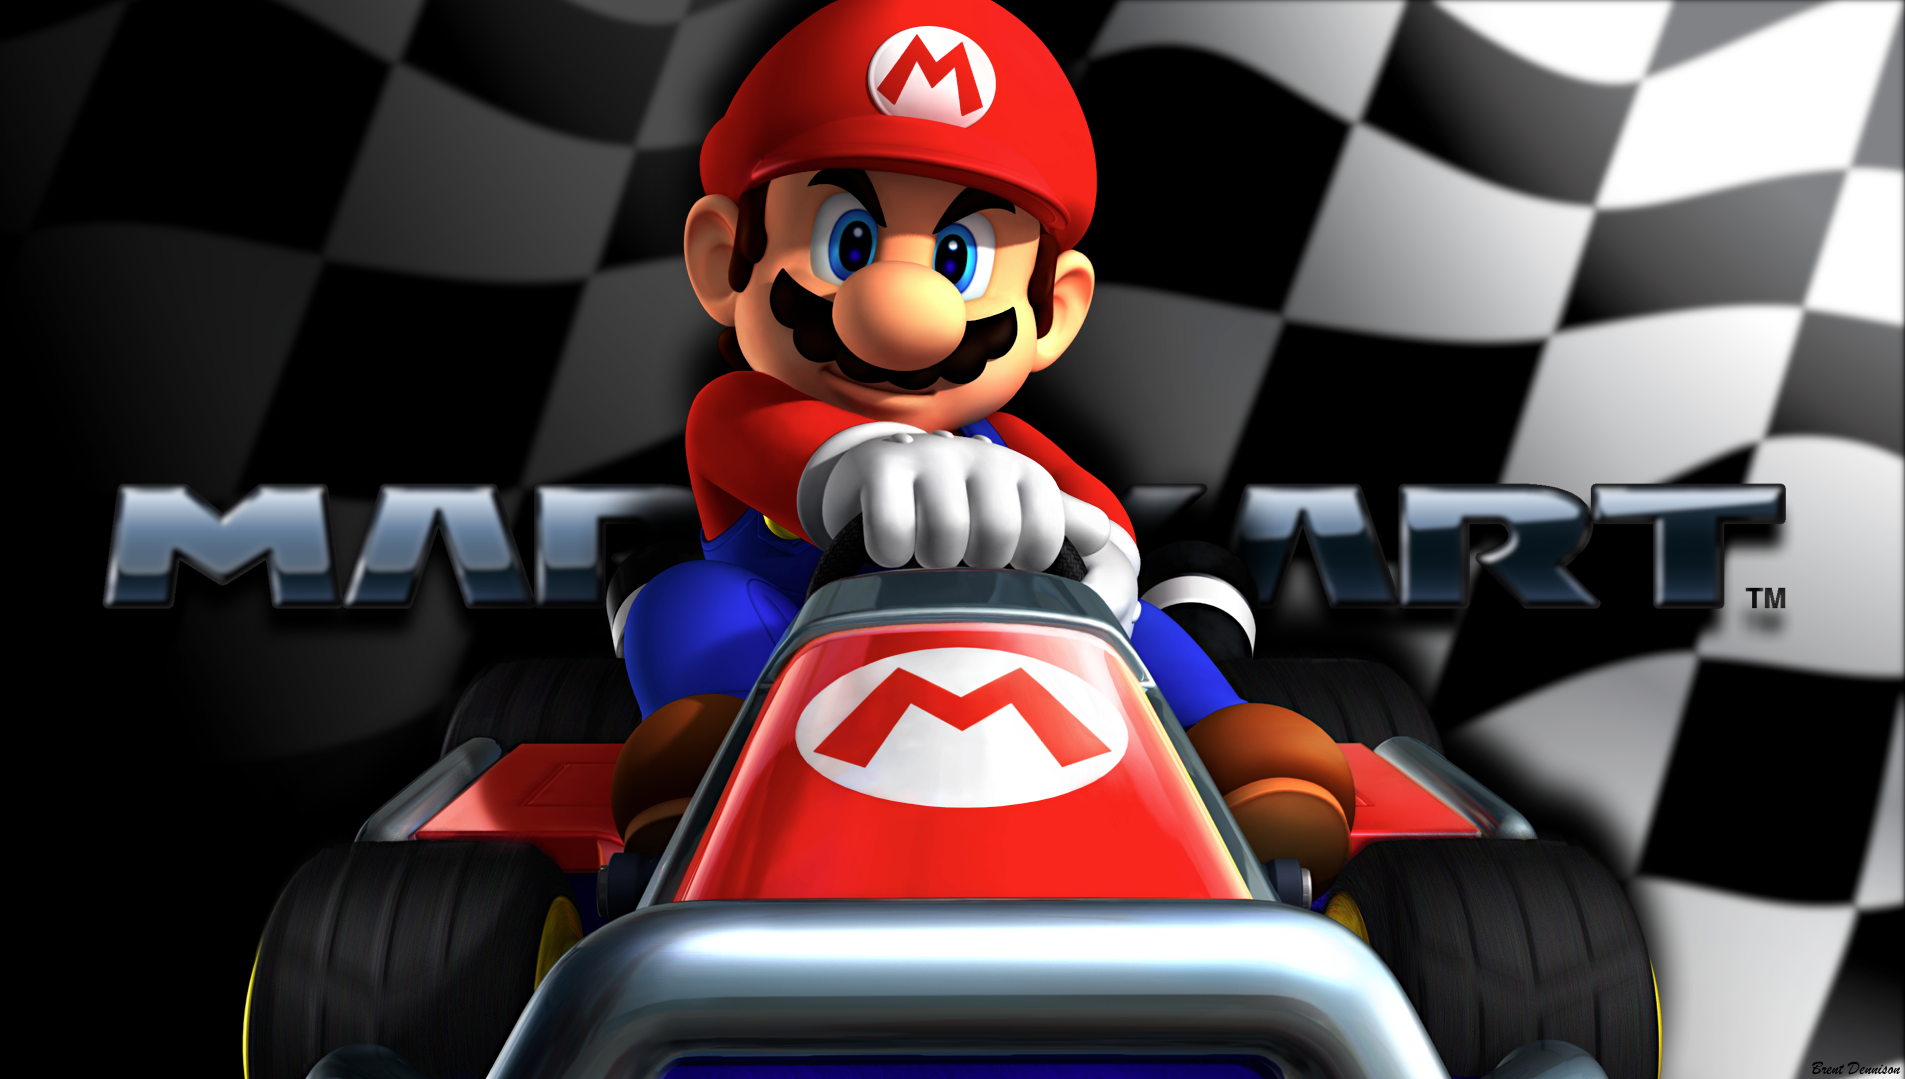 mario kart for 3ds wallpaper 2 by brentdennison on deviantart